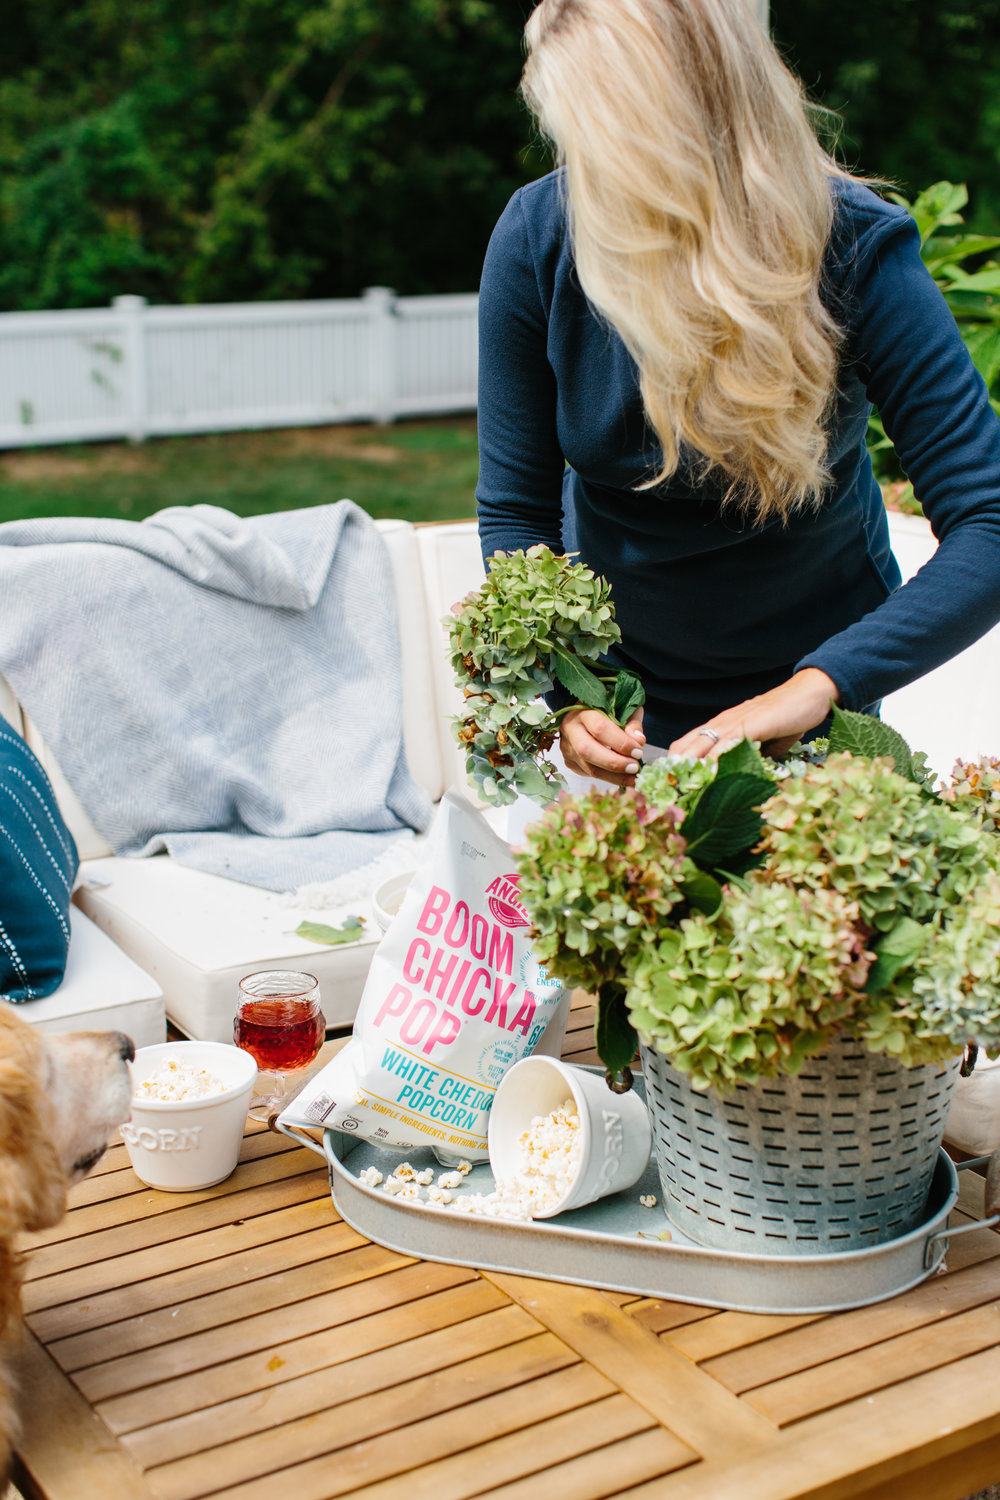 End of Summer Patio from Abby Capalbo | Photography: Erin McGinn